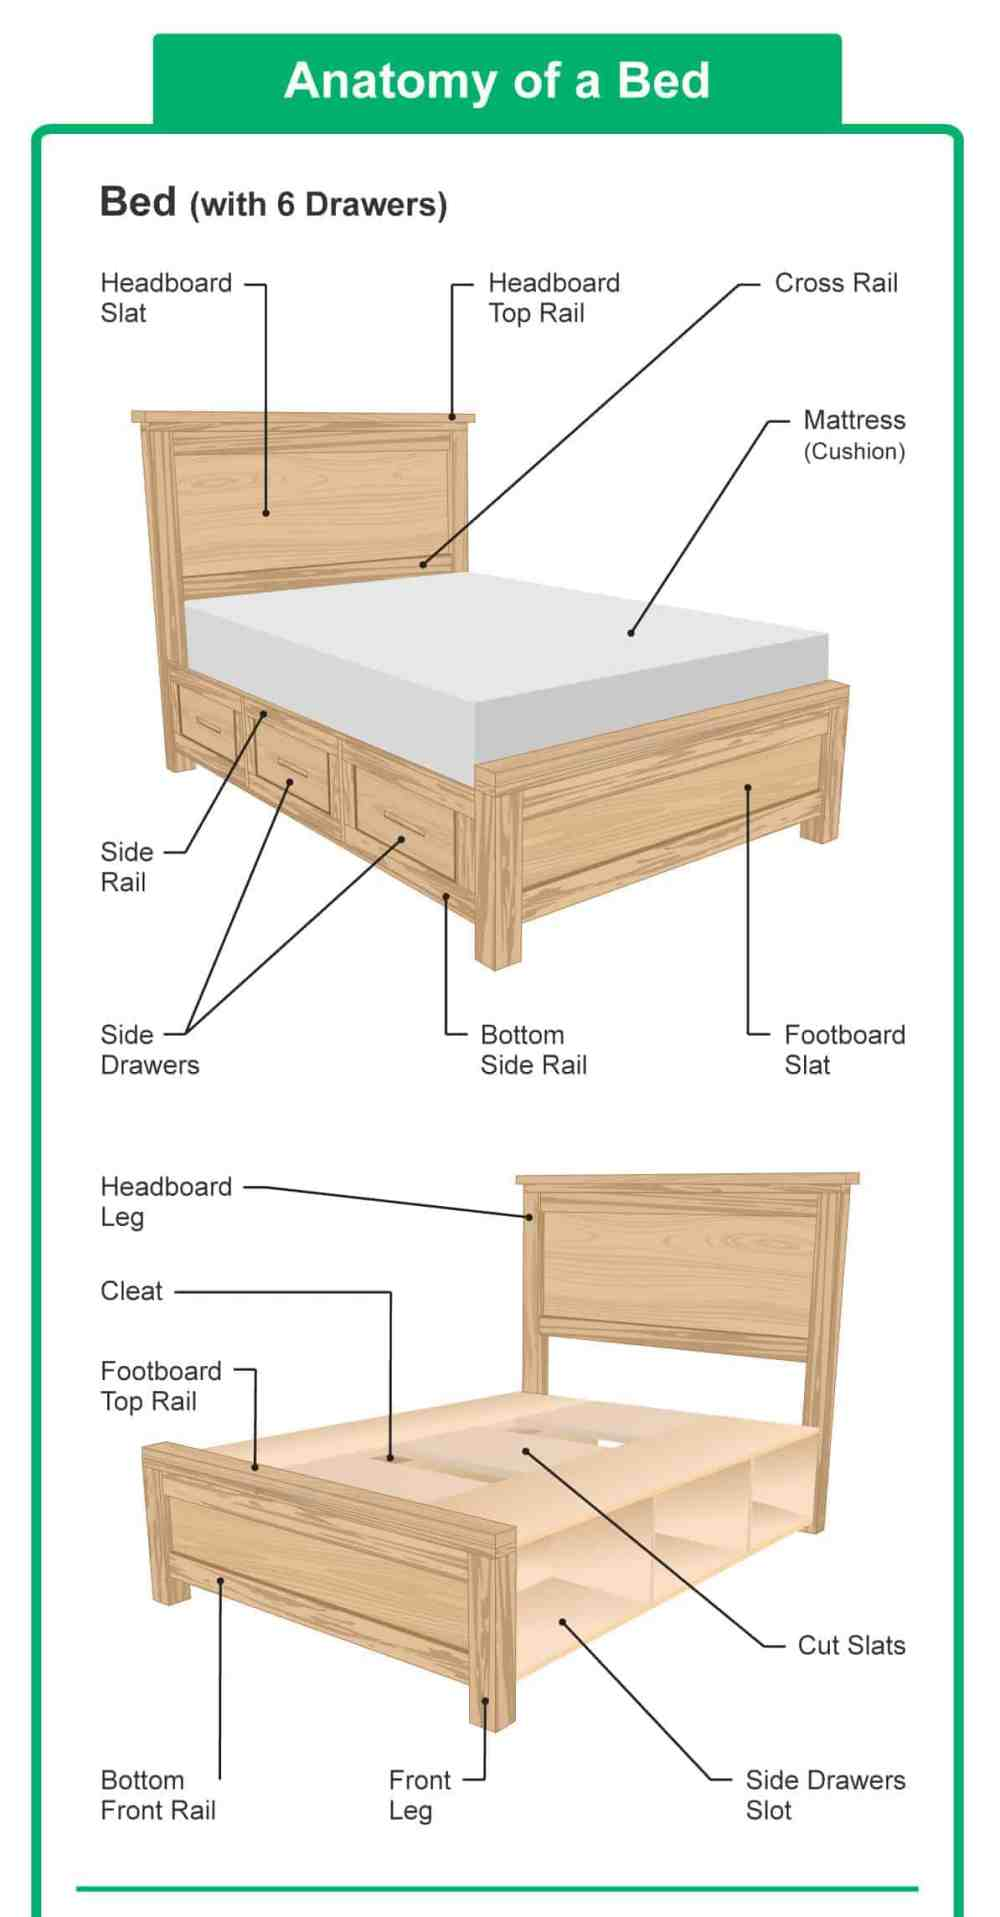 medium resolution of diagram illustrating the different parts of a bed